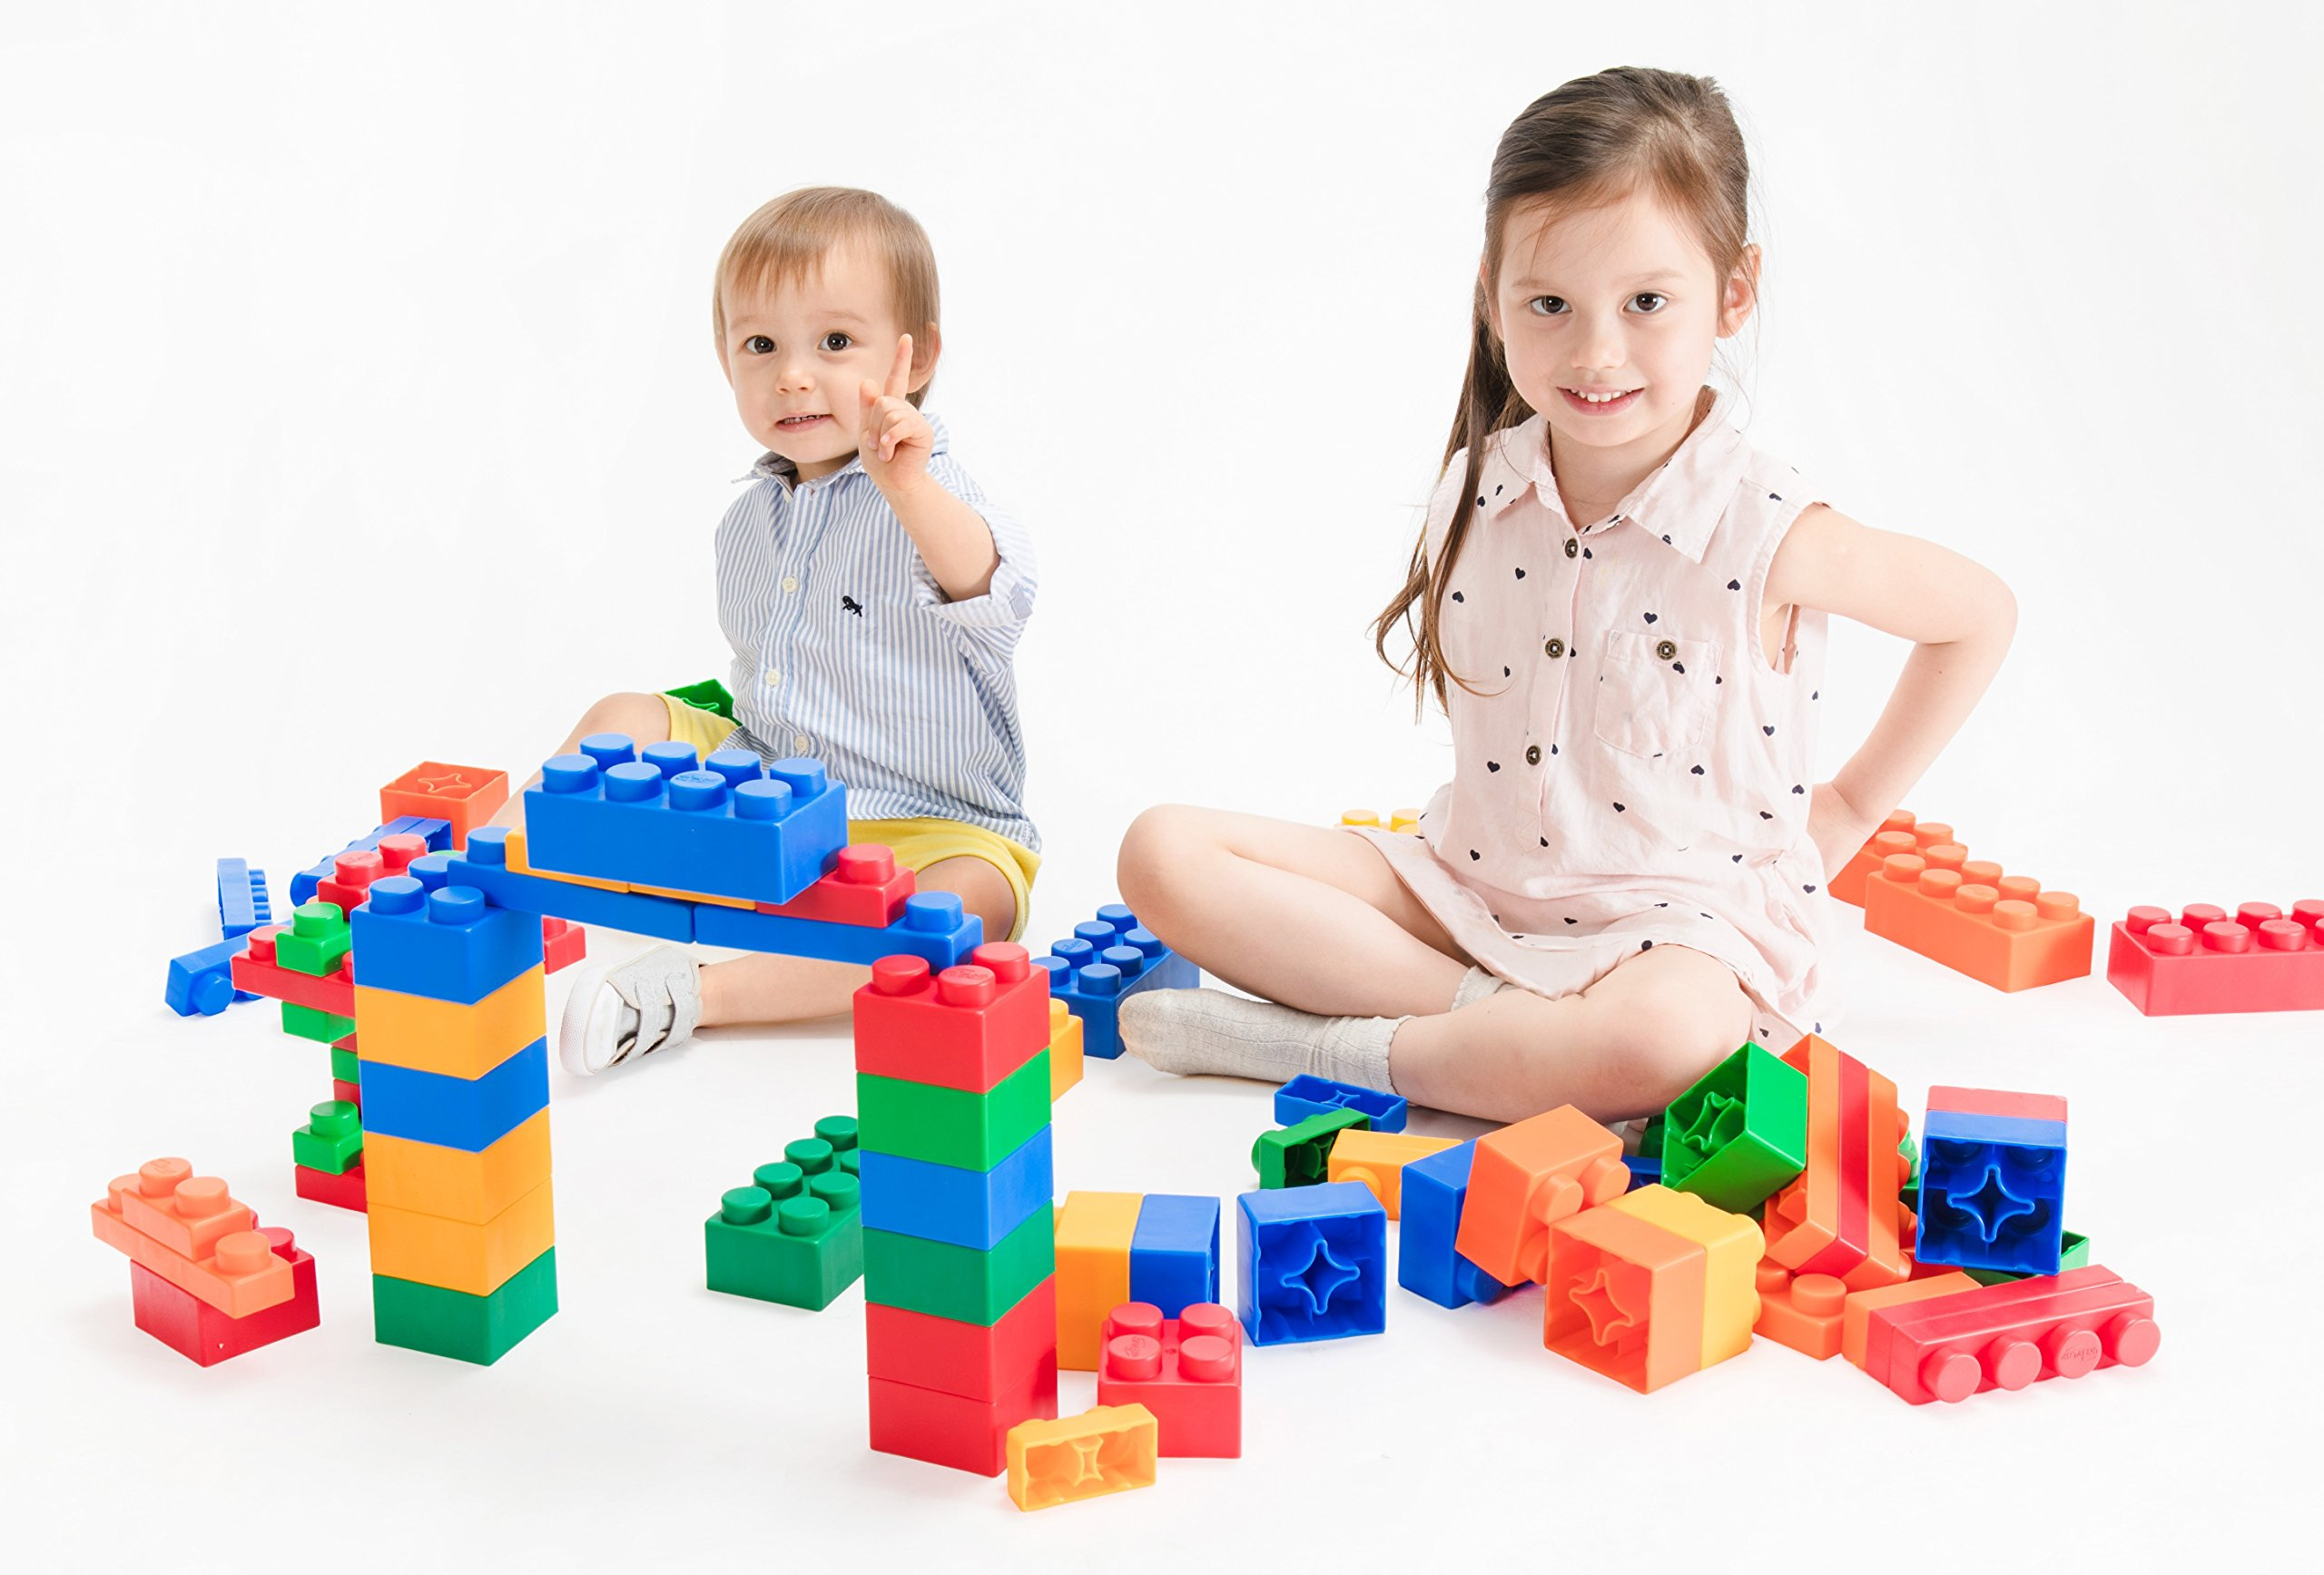 UNiPLAY Jumbo Soft Building Blocks - Mix Series(36pcs). Educational and Creative Toys, Food Grade Material(Antibacterial), Non-Toxic, BPA Free, 100%Safe for Kids, Toddlers, Baby, Preschoolers